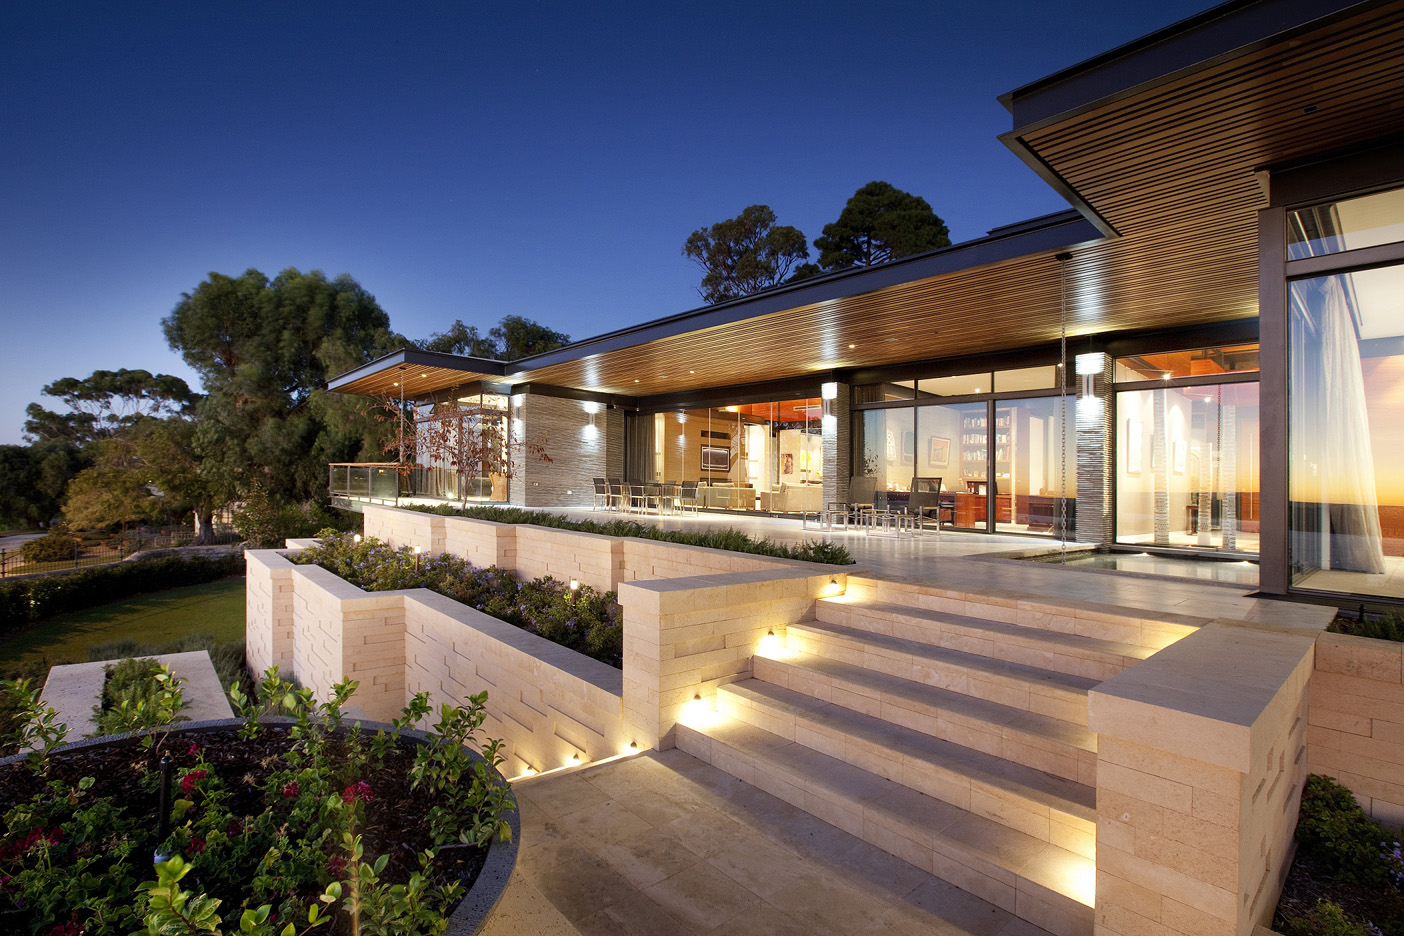 peppermint grove residence - western australia - 2010    This Western Australian residence is situated on a corner site with unobstructed 180 degree views of the Swan River and Perth City beyond. The home's design and materials   were   conceived   to   best   express   the   horizontal and showcase the nature of the panoramic landscape and extraordinary views.  The architectural composition of the home takes advantage of site conditions, prevailing winds, sun penetration,     and     light.     The     roof     form     was     envisaged as     slender     horizontal     wings,     which     float over     the     glass, masonry and steel structure below.